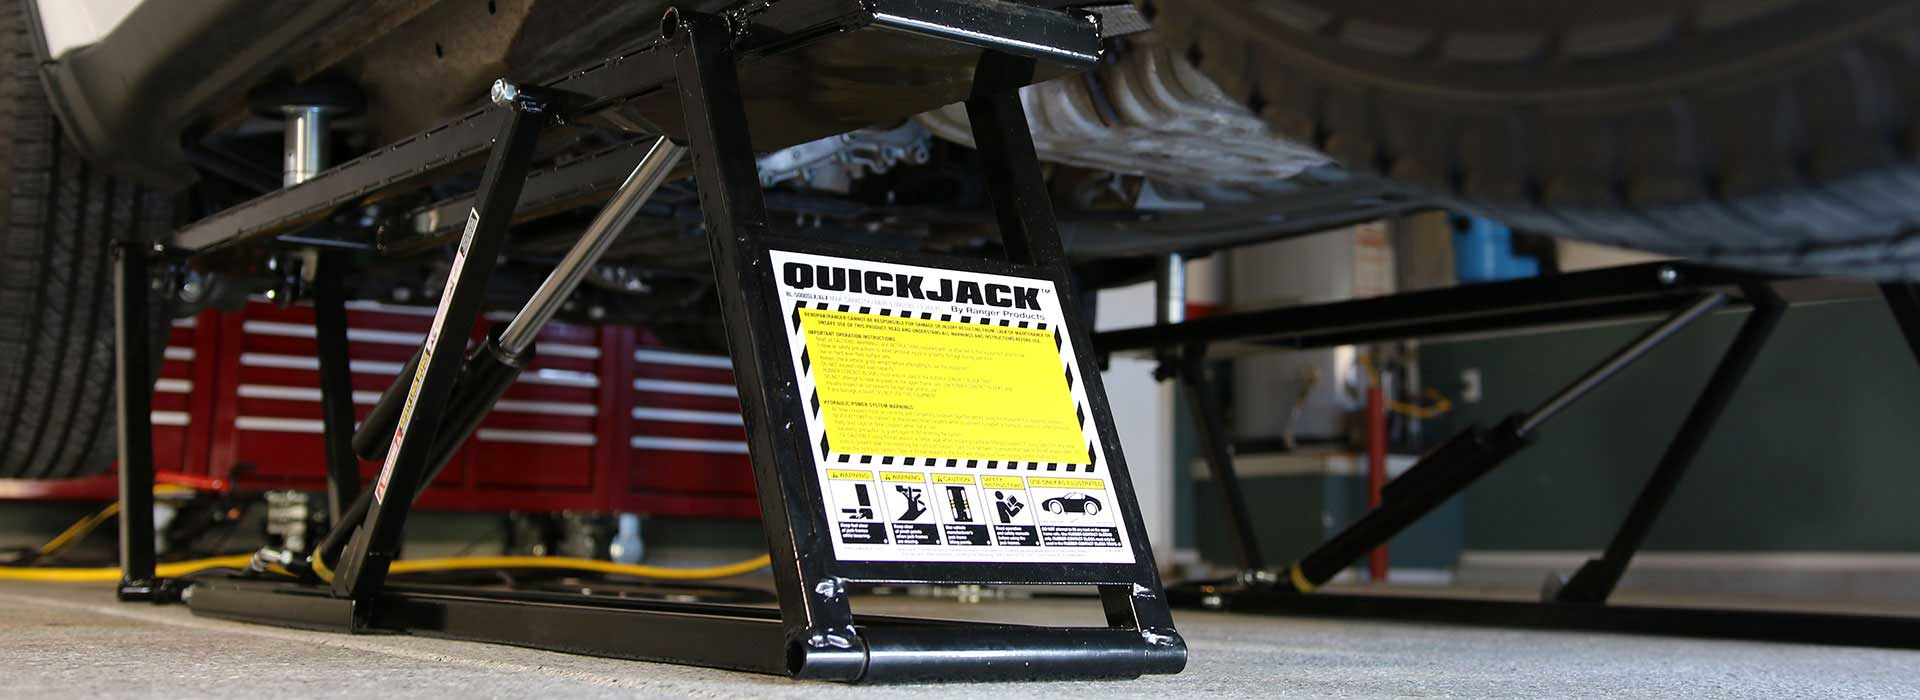 Car Lift For Home Garage >> QuickJack Canada - Portable Car Lift System for Home Garage or Repair Shop